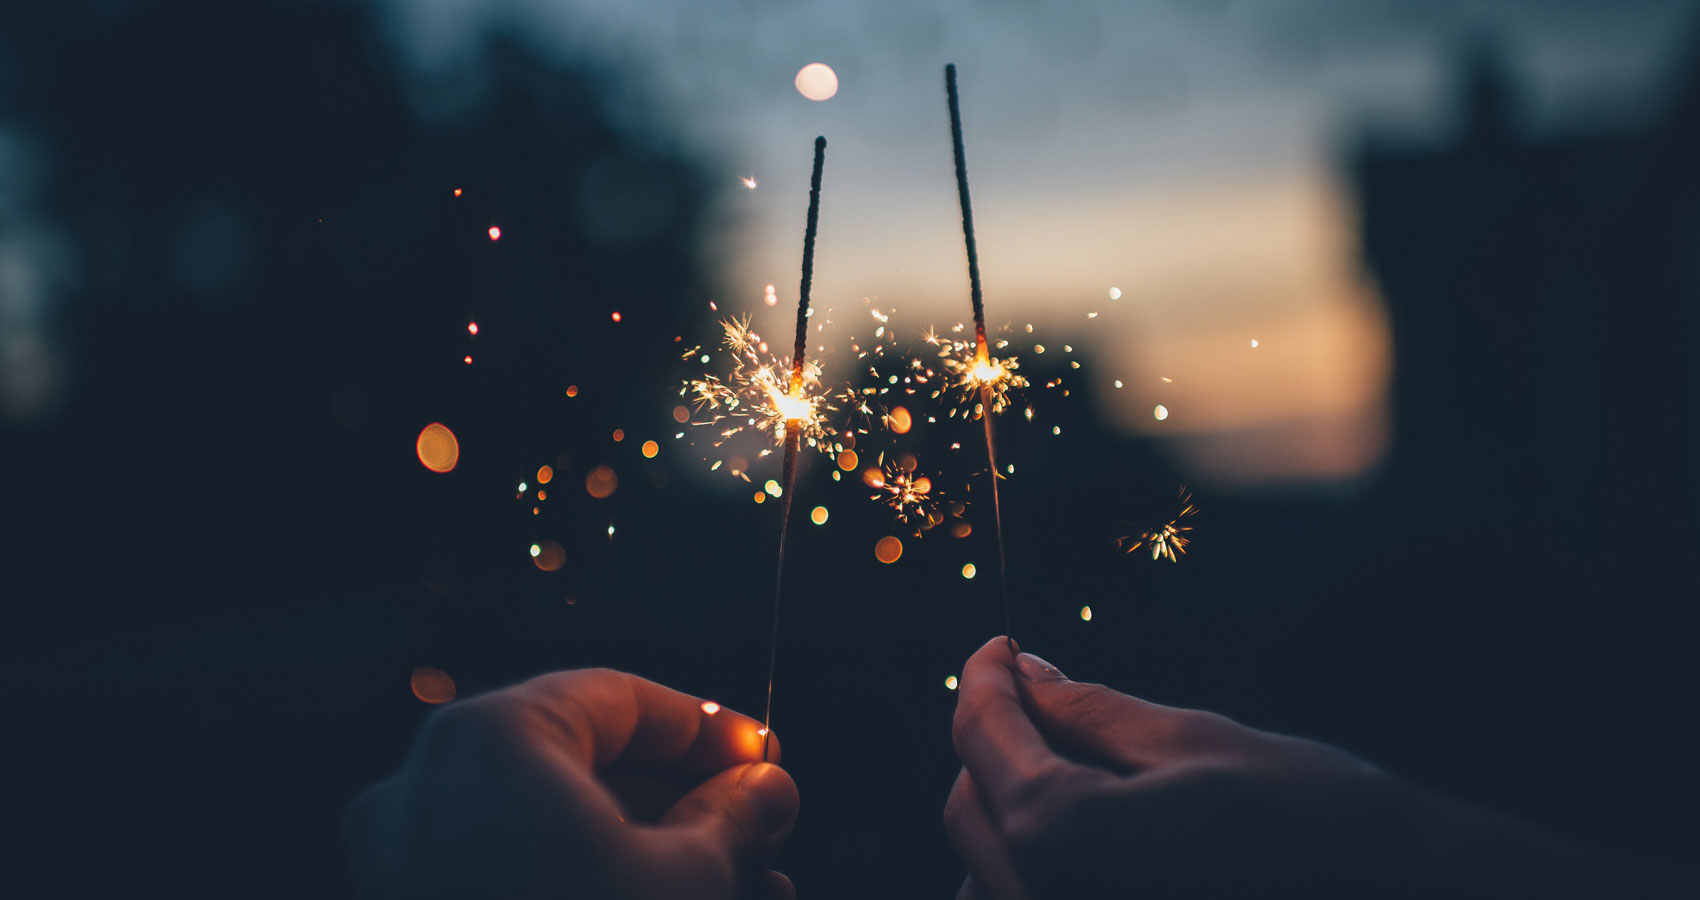 The Year, a poem by Ella Wheeler Wilcox at Spillwords.com